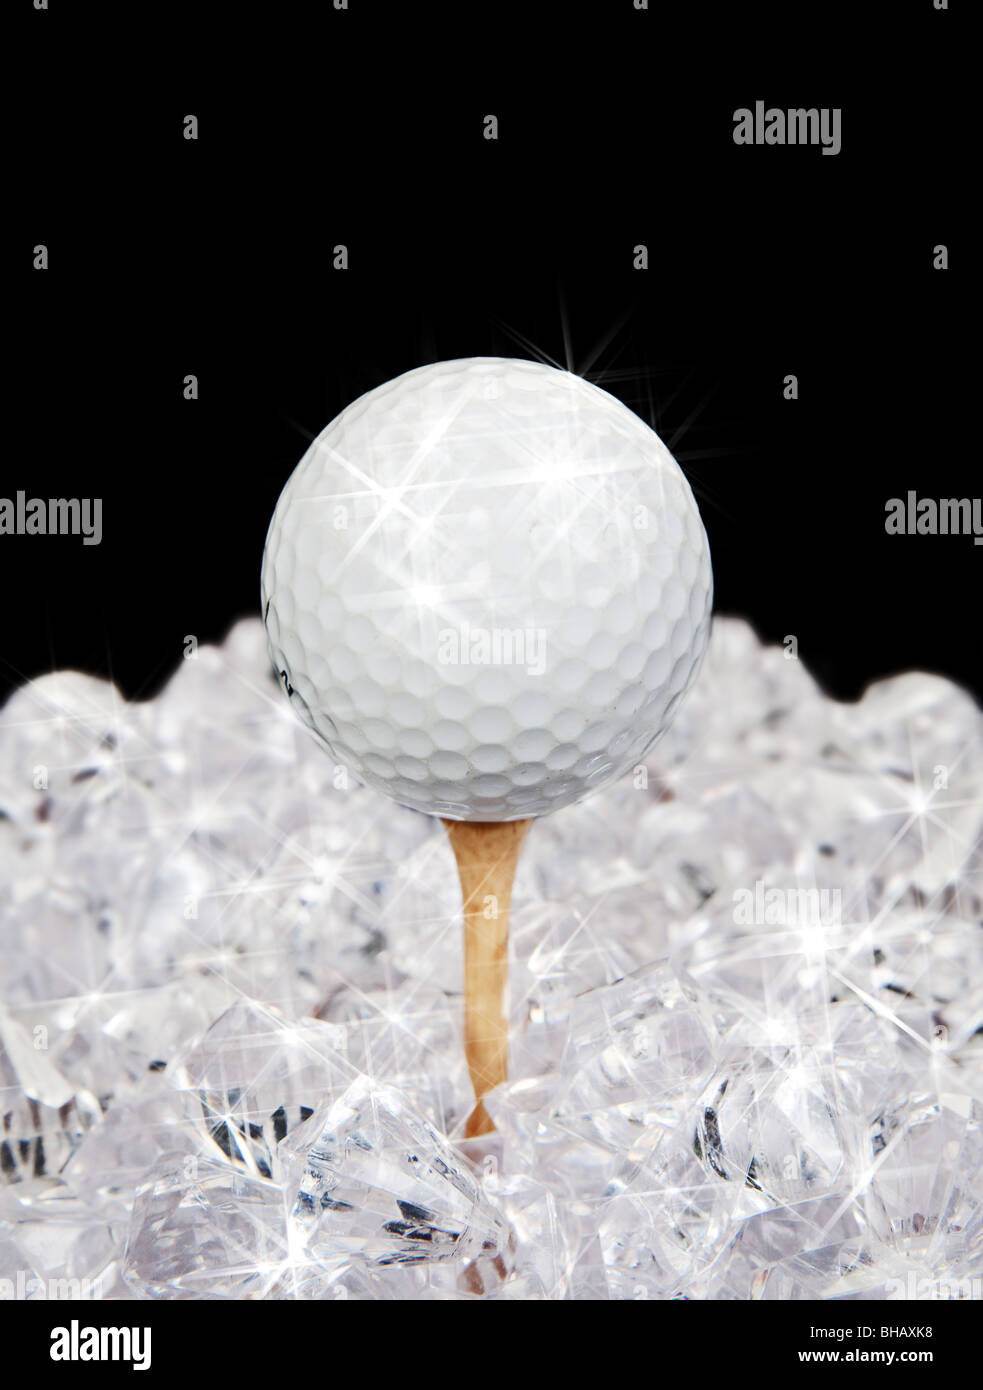 Ultimate golf bola brillante en la t entre diamantes Imagen De Stock